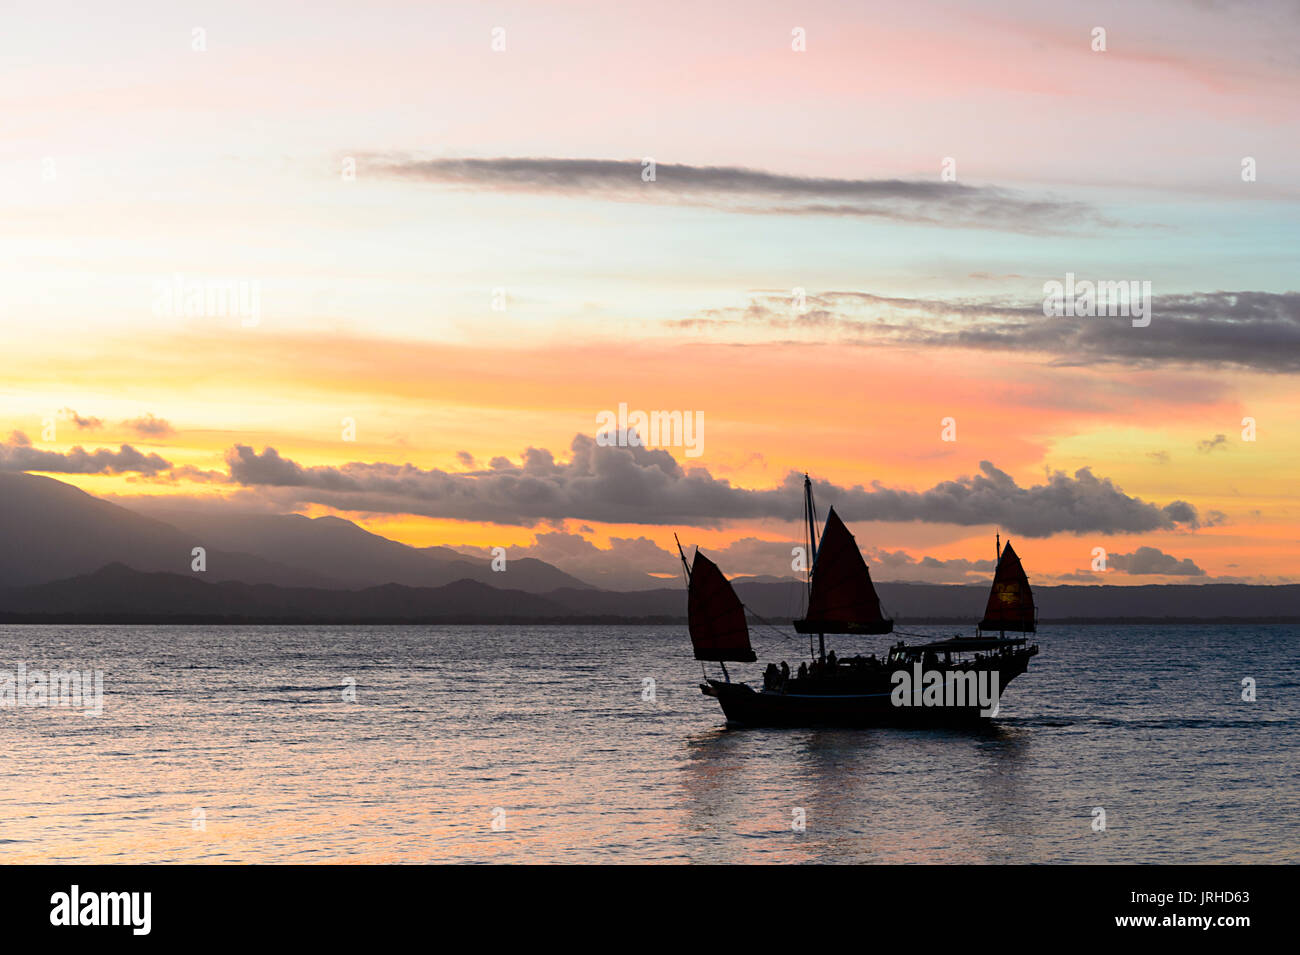 Chinese Junk taking tourists on a sunset cruise, Port Douglas, Far North Queensland, FNQ, QLD, Australia - Stock Image